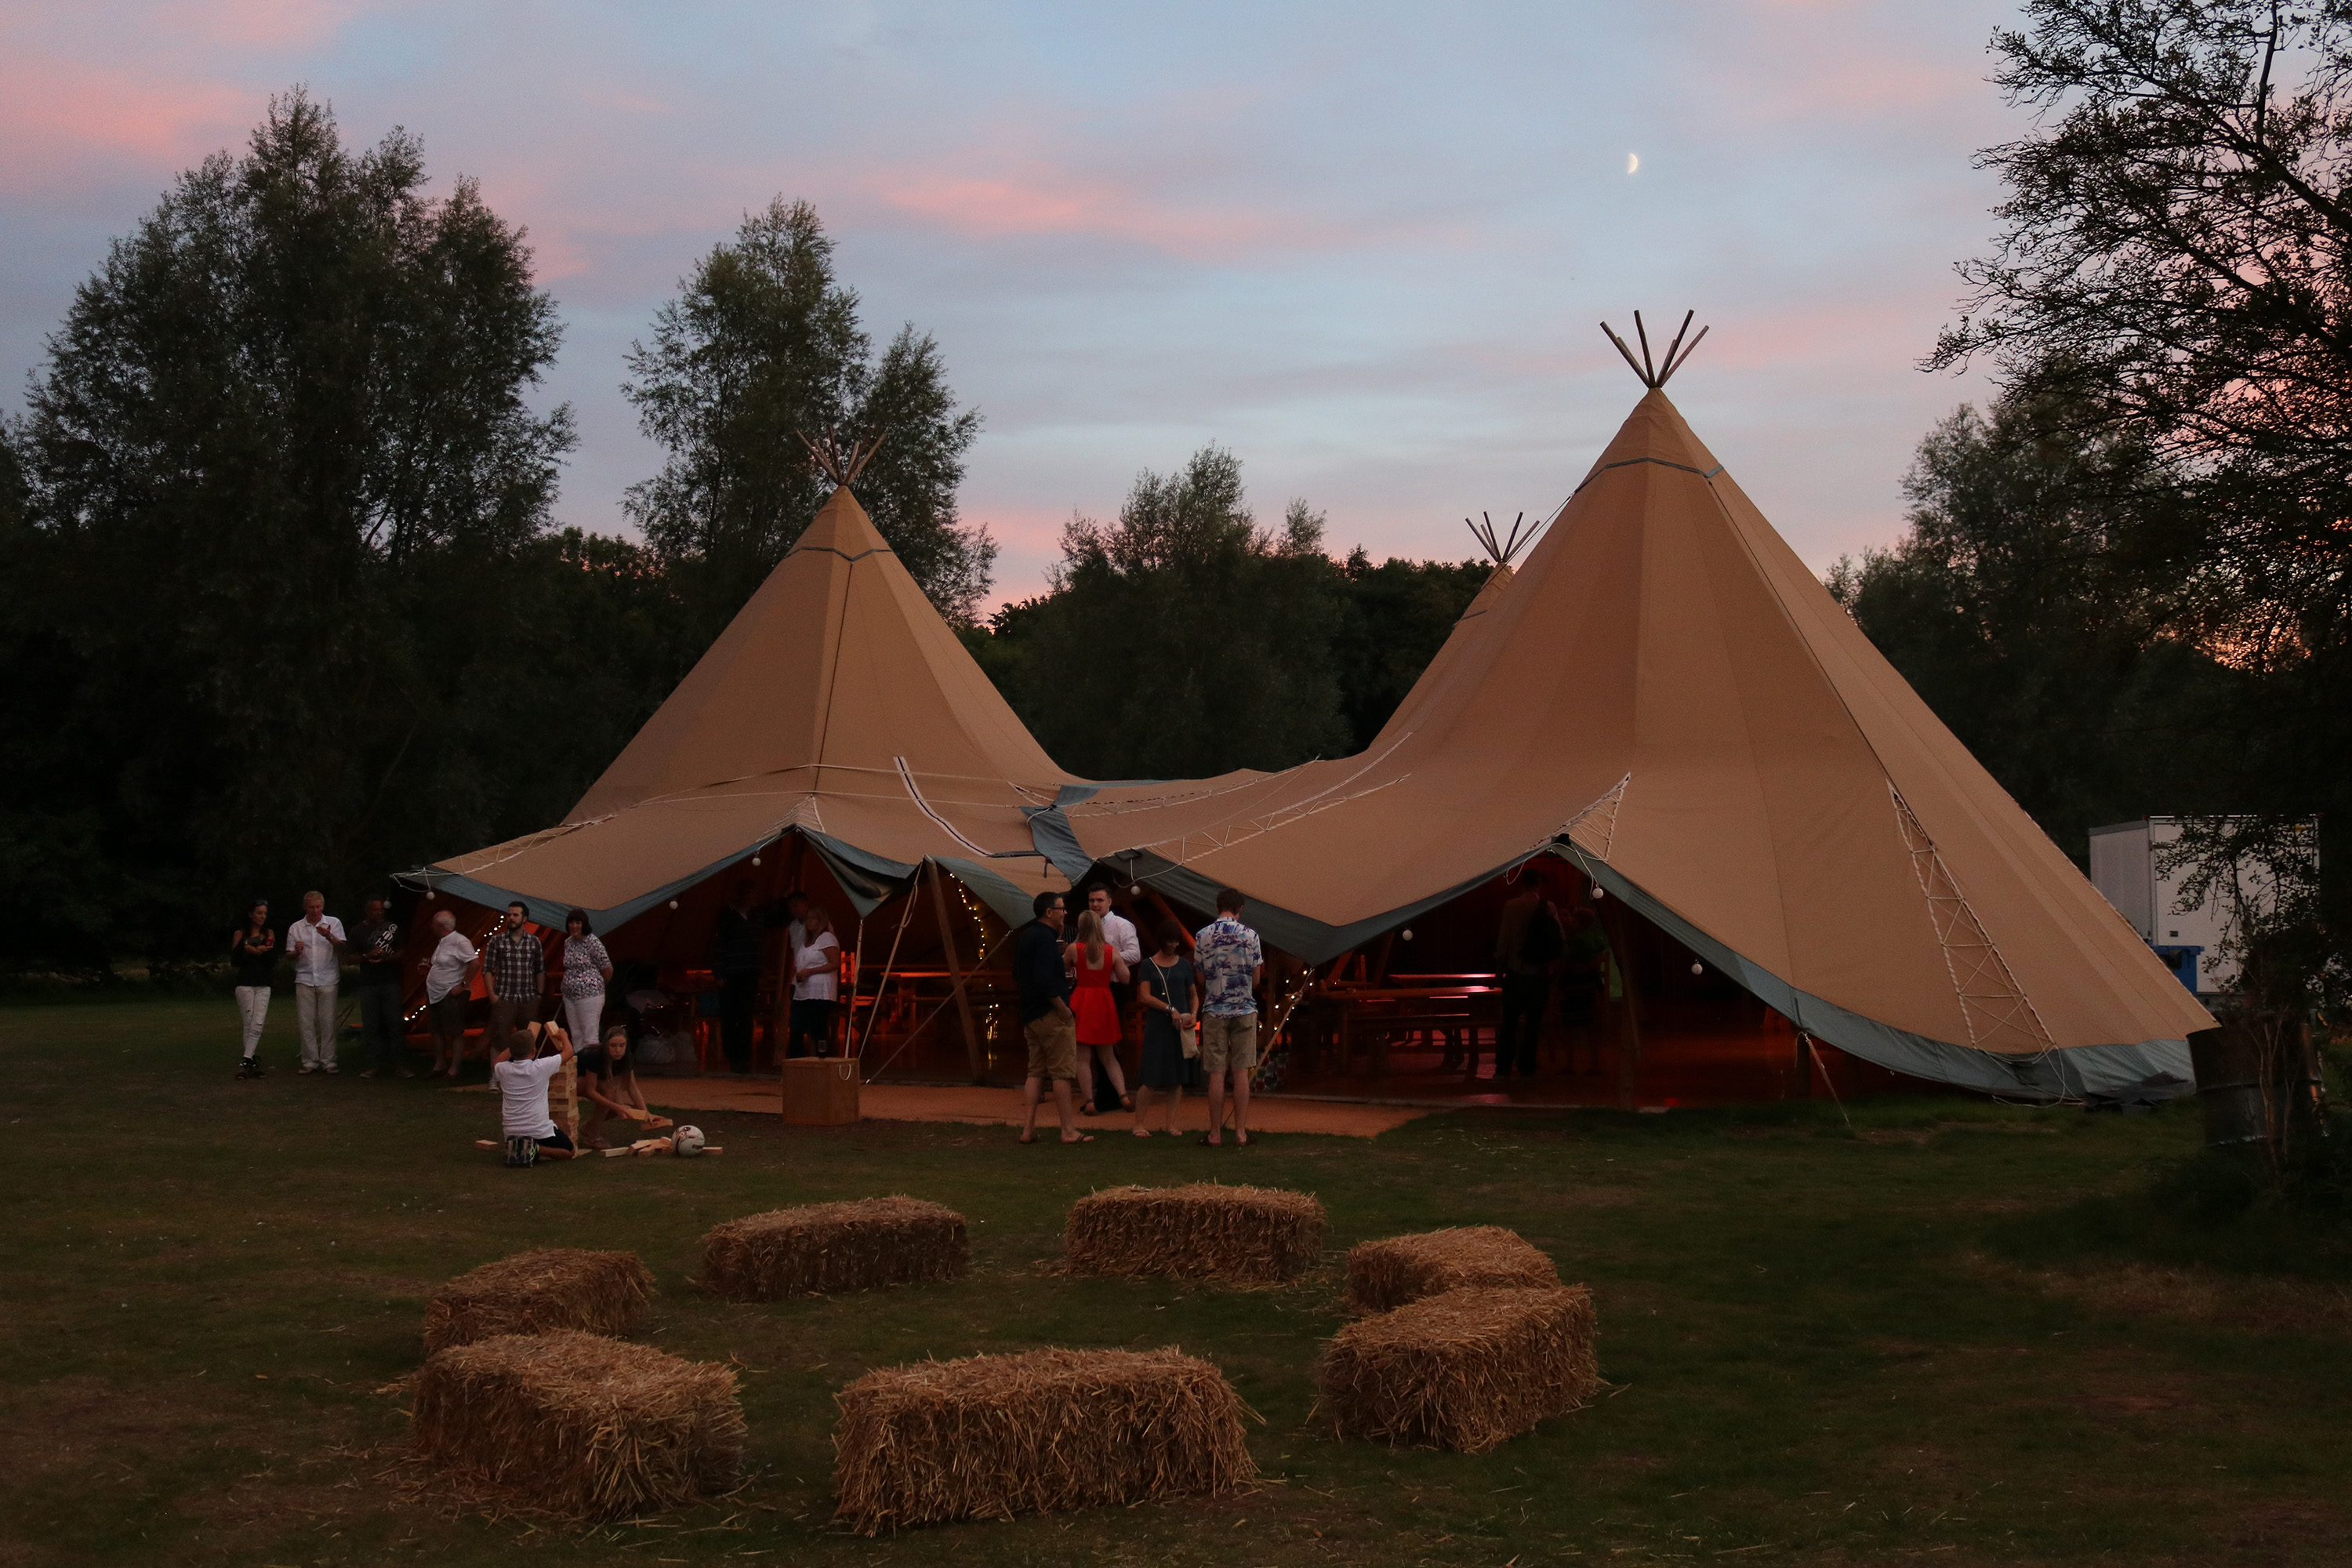 Mansfield Monk 25th anniversary celebrations - teepee at dusk